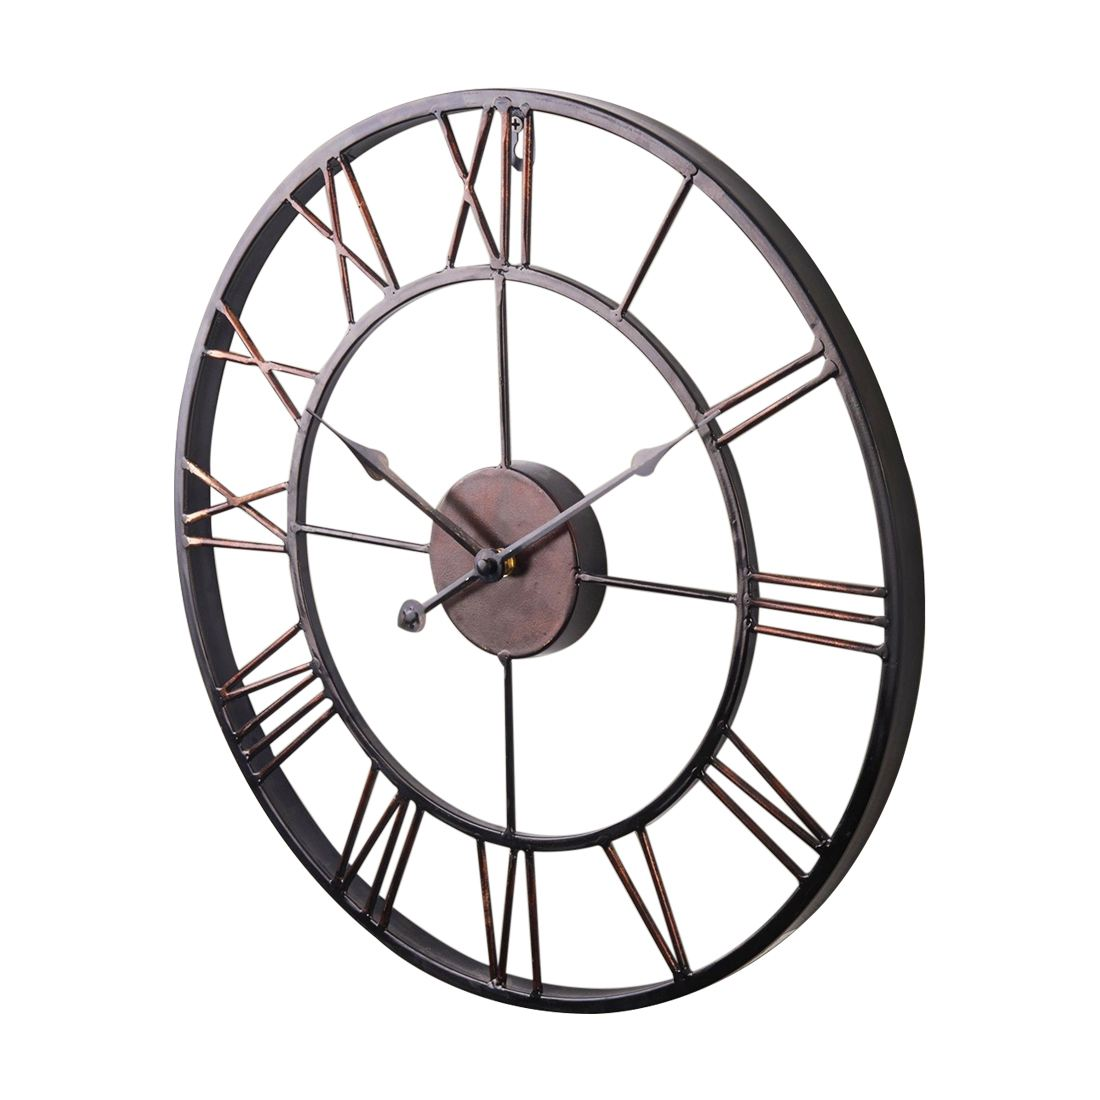 New Extra Large Vintage Style Statement Metal Wall Clock Country Style - Chocolate Color